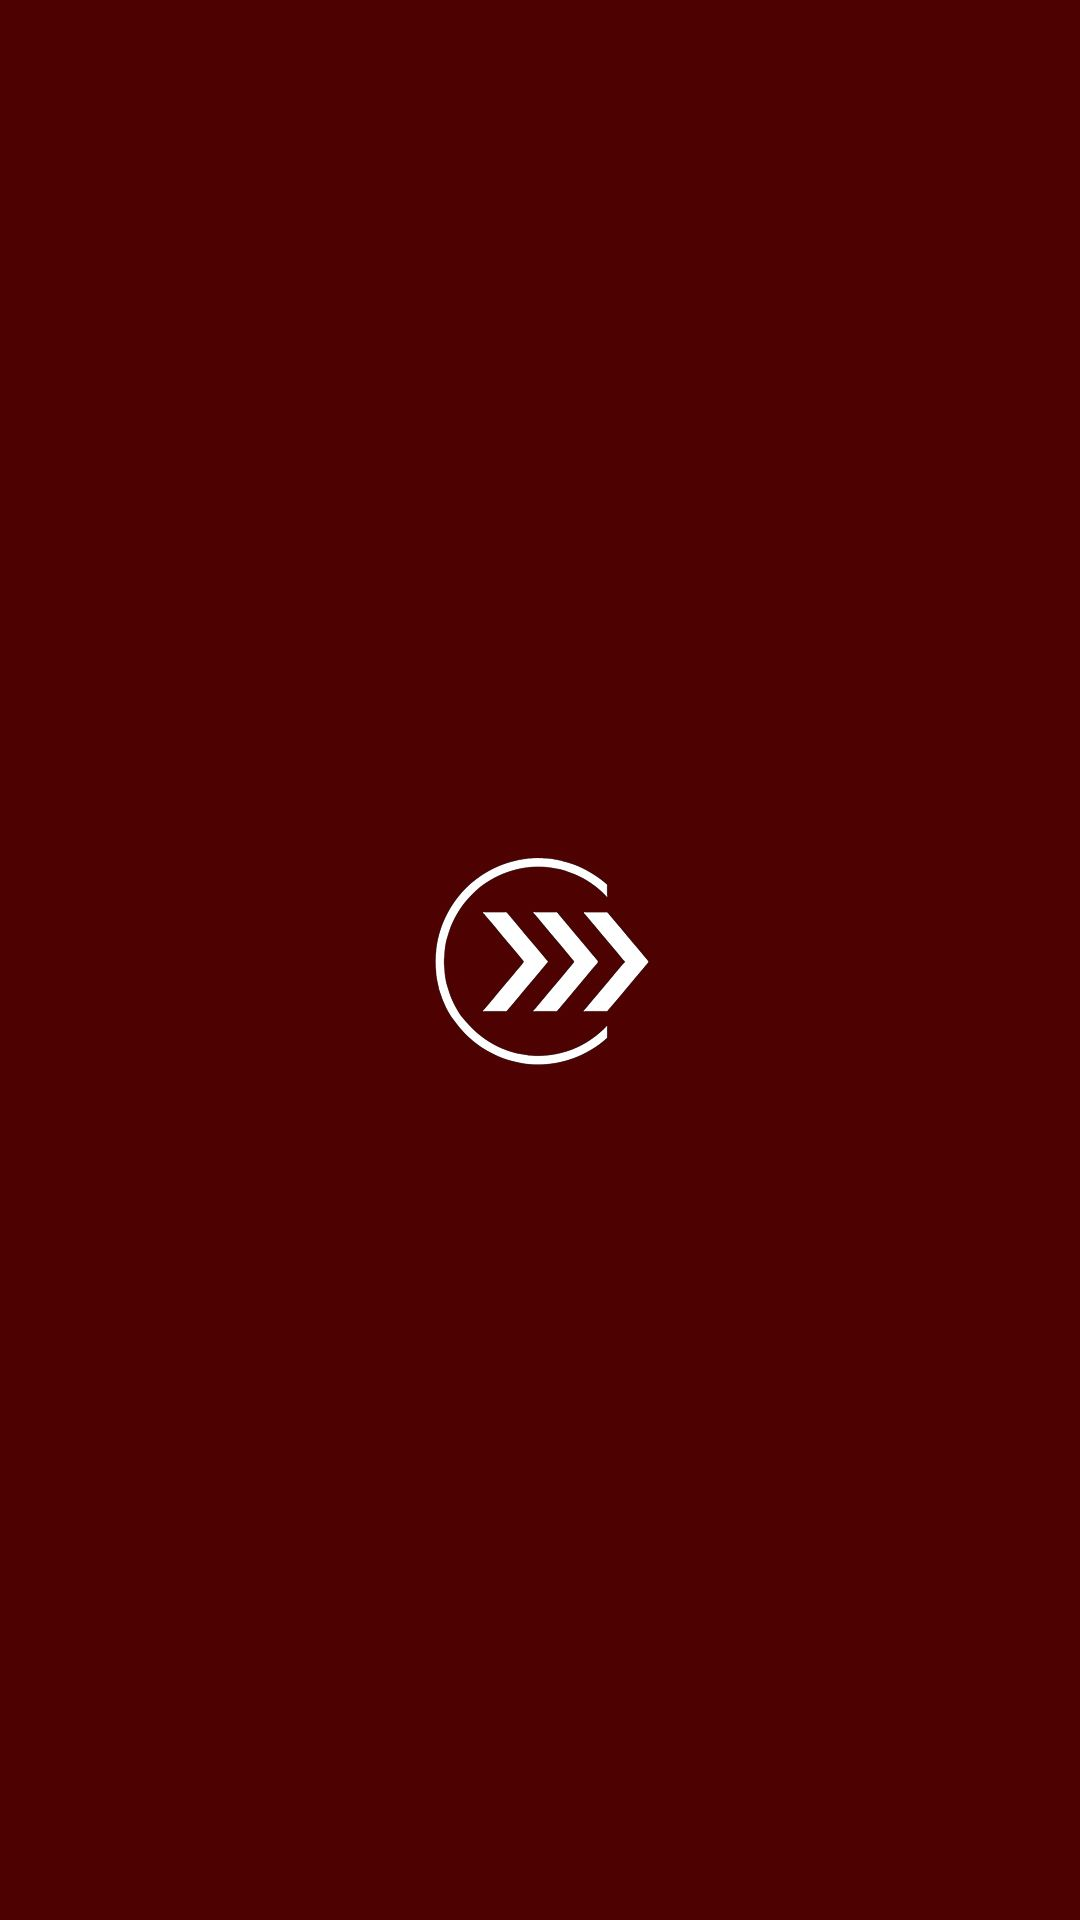 Dci Cadets Hd Wallpaper For Iphone Simple Clean Elegant Design